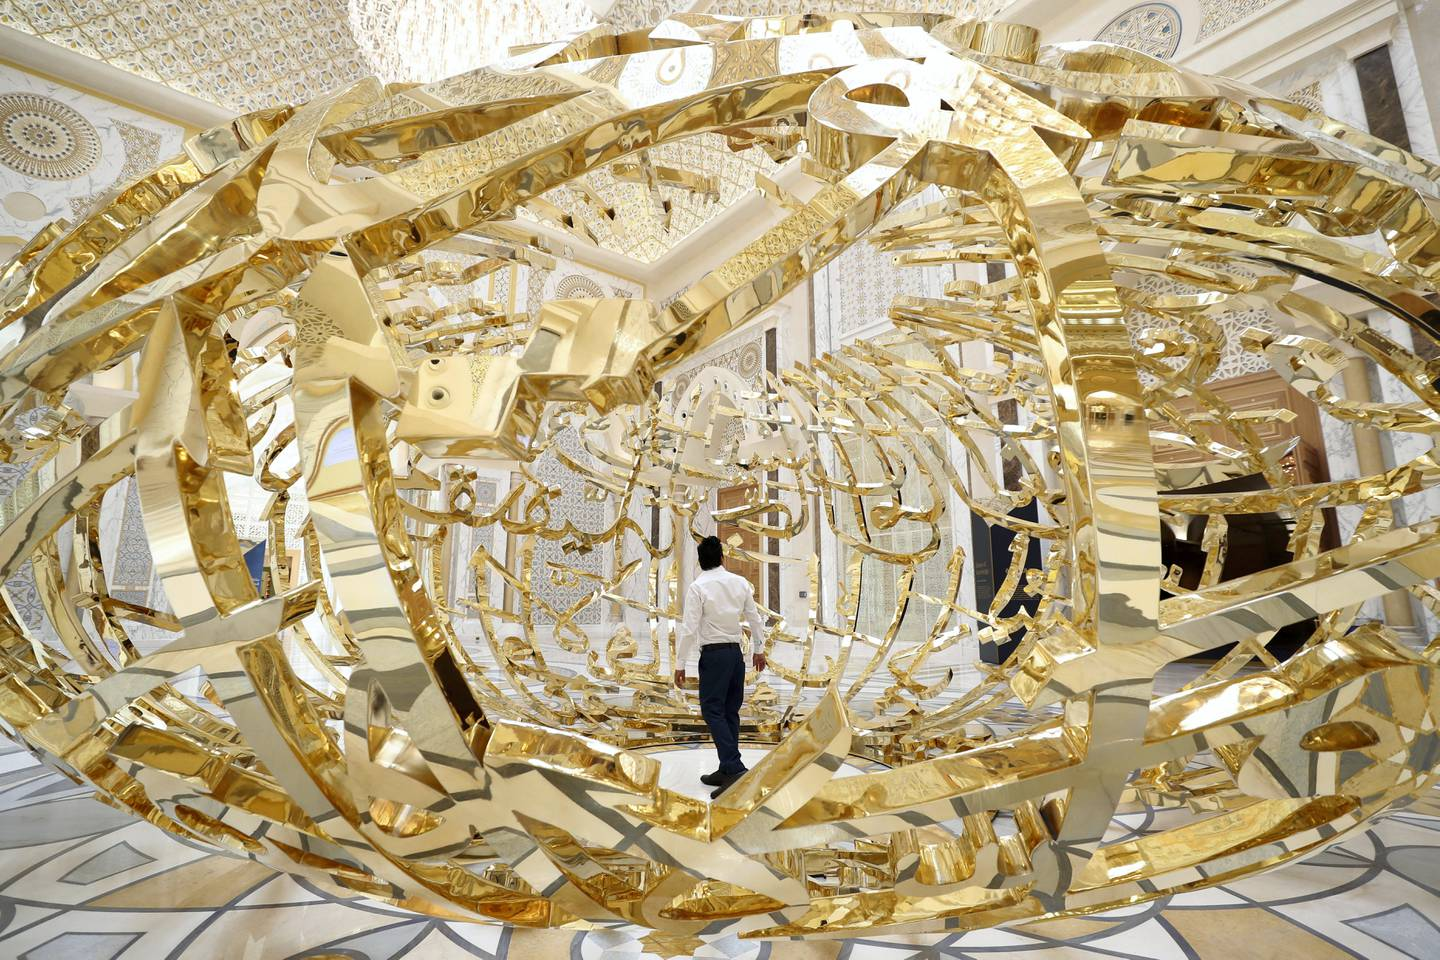 Abu Dhabi, United Arab Emirates - March 11, 2019: Santos looks at The Power of Words. Exclusive preview and guided tour of Qasr Al Watan, the UAEÕs new cultural landmark. Monday the 11th of March 2019 at Qasr Al Watan, Abu Dhabi. Chris Whiteoak / The National